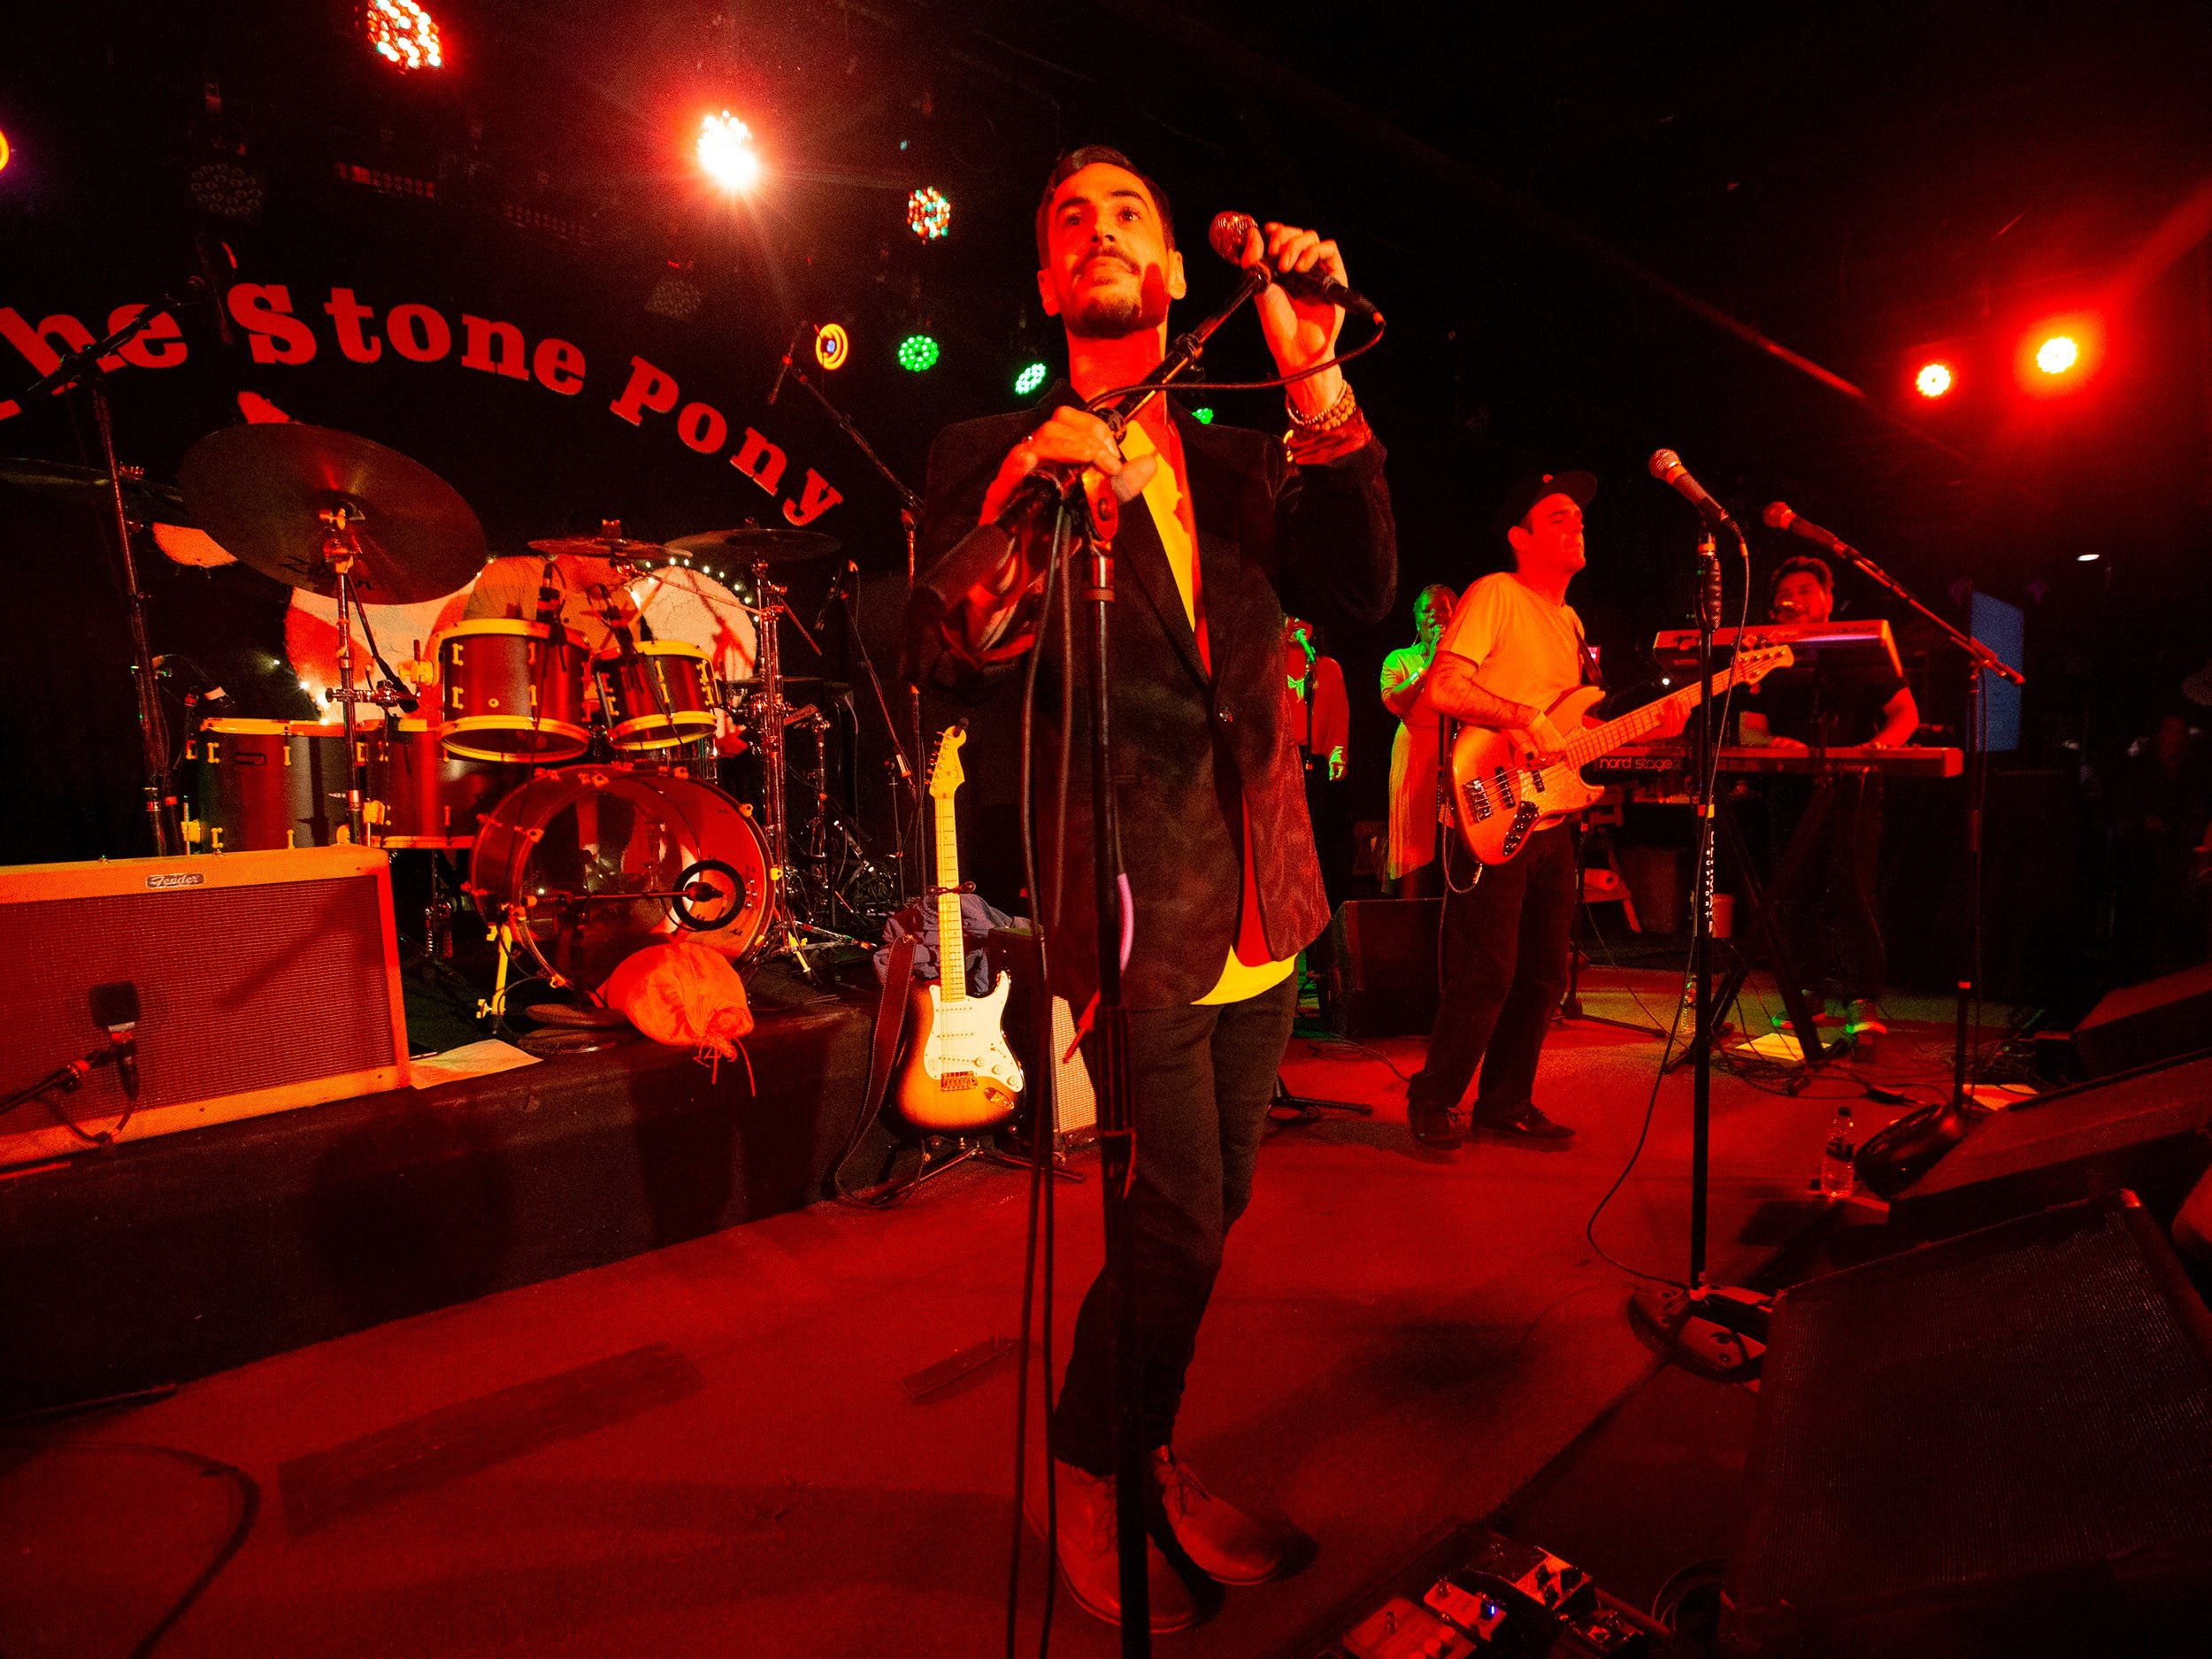 Quincy Mumford and the Reason Why's tribute to Prince at the Stone Pony in Asbury Park on December 7, 2018.